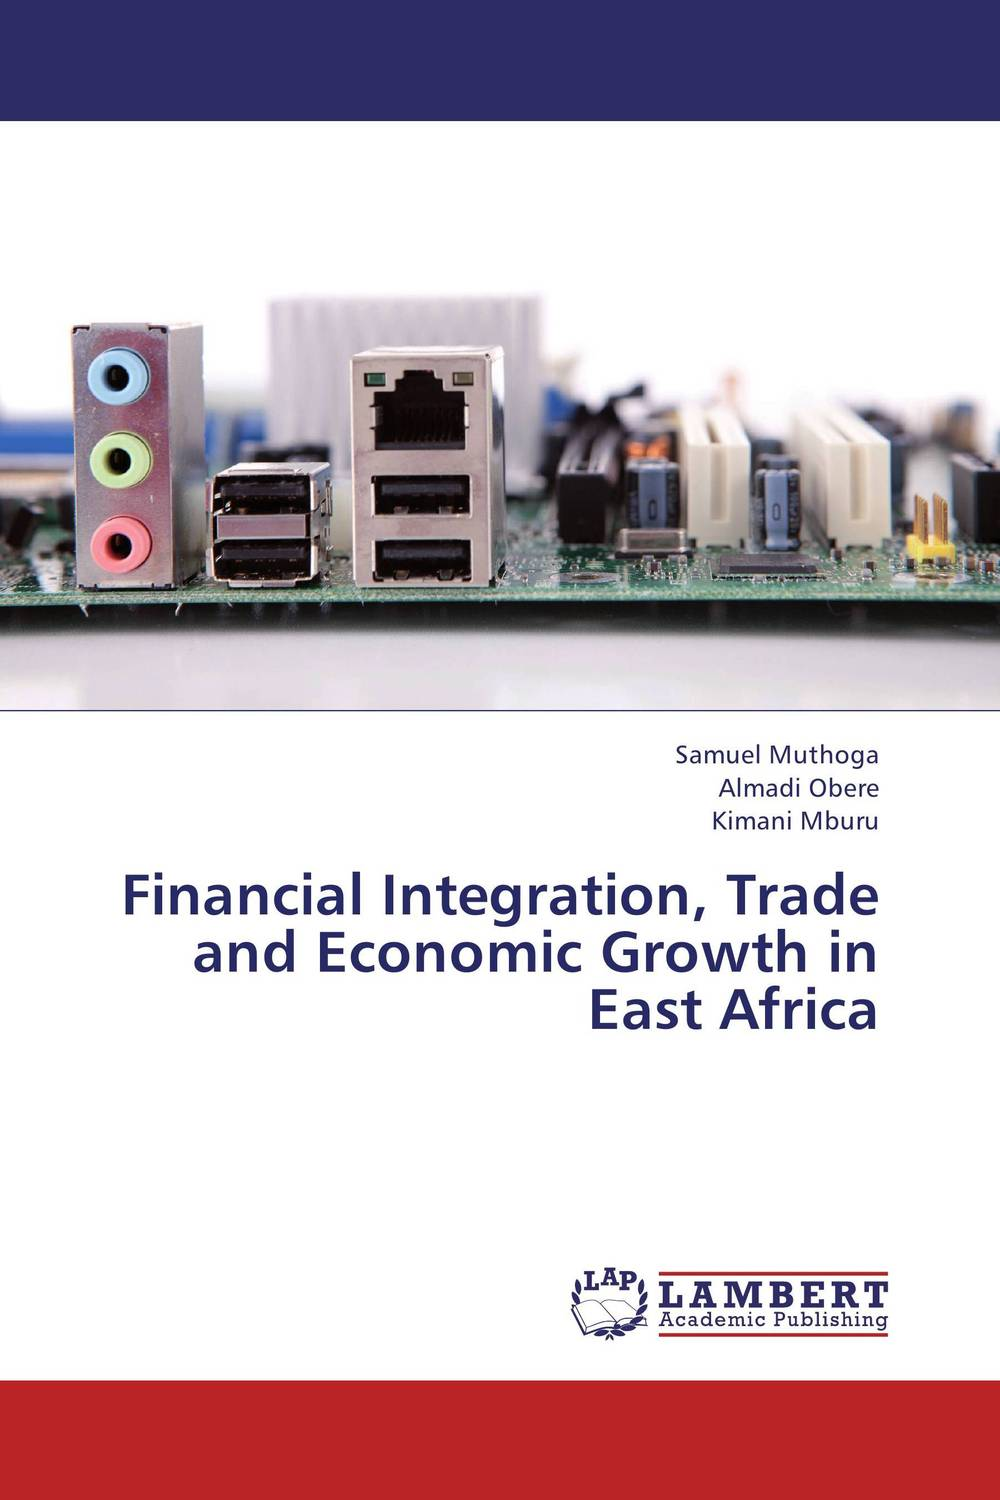 Financial Integration, Trade and Economic Growth in East Africa wu xiaoqiu chinese securities companies an analysis of economic growth financial structure transformation and future development